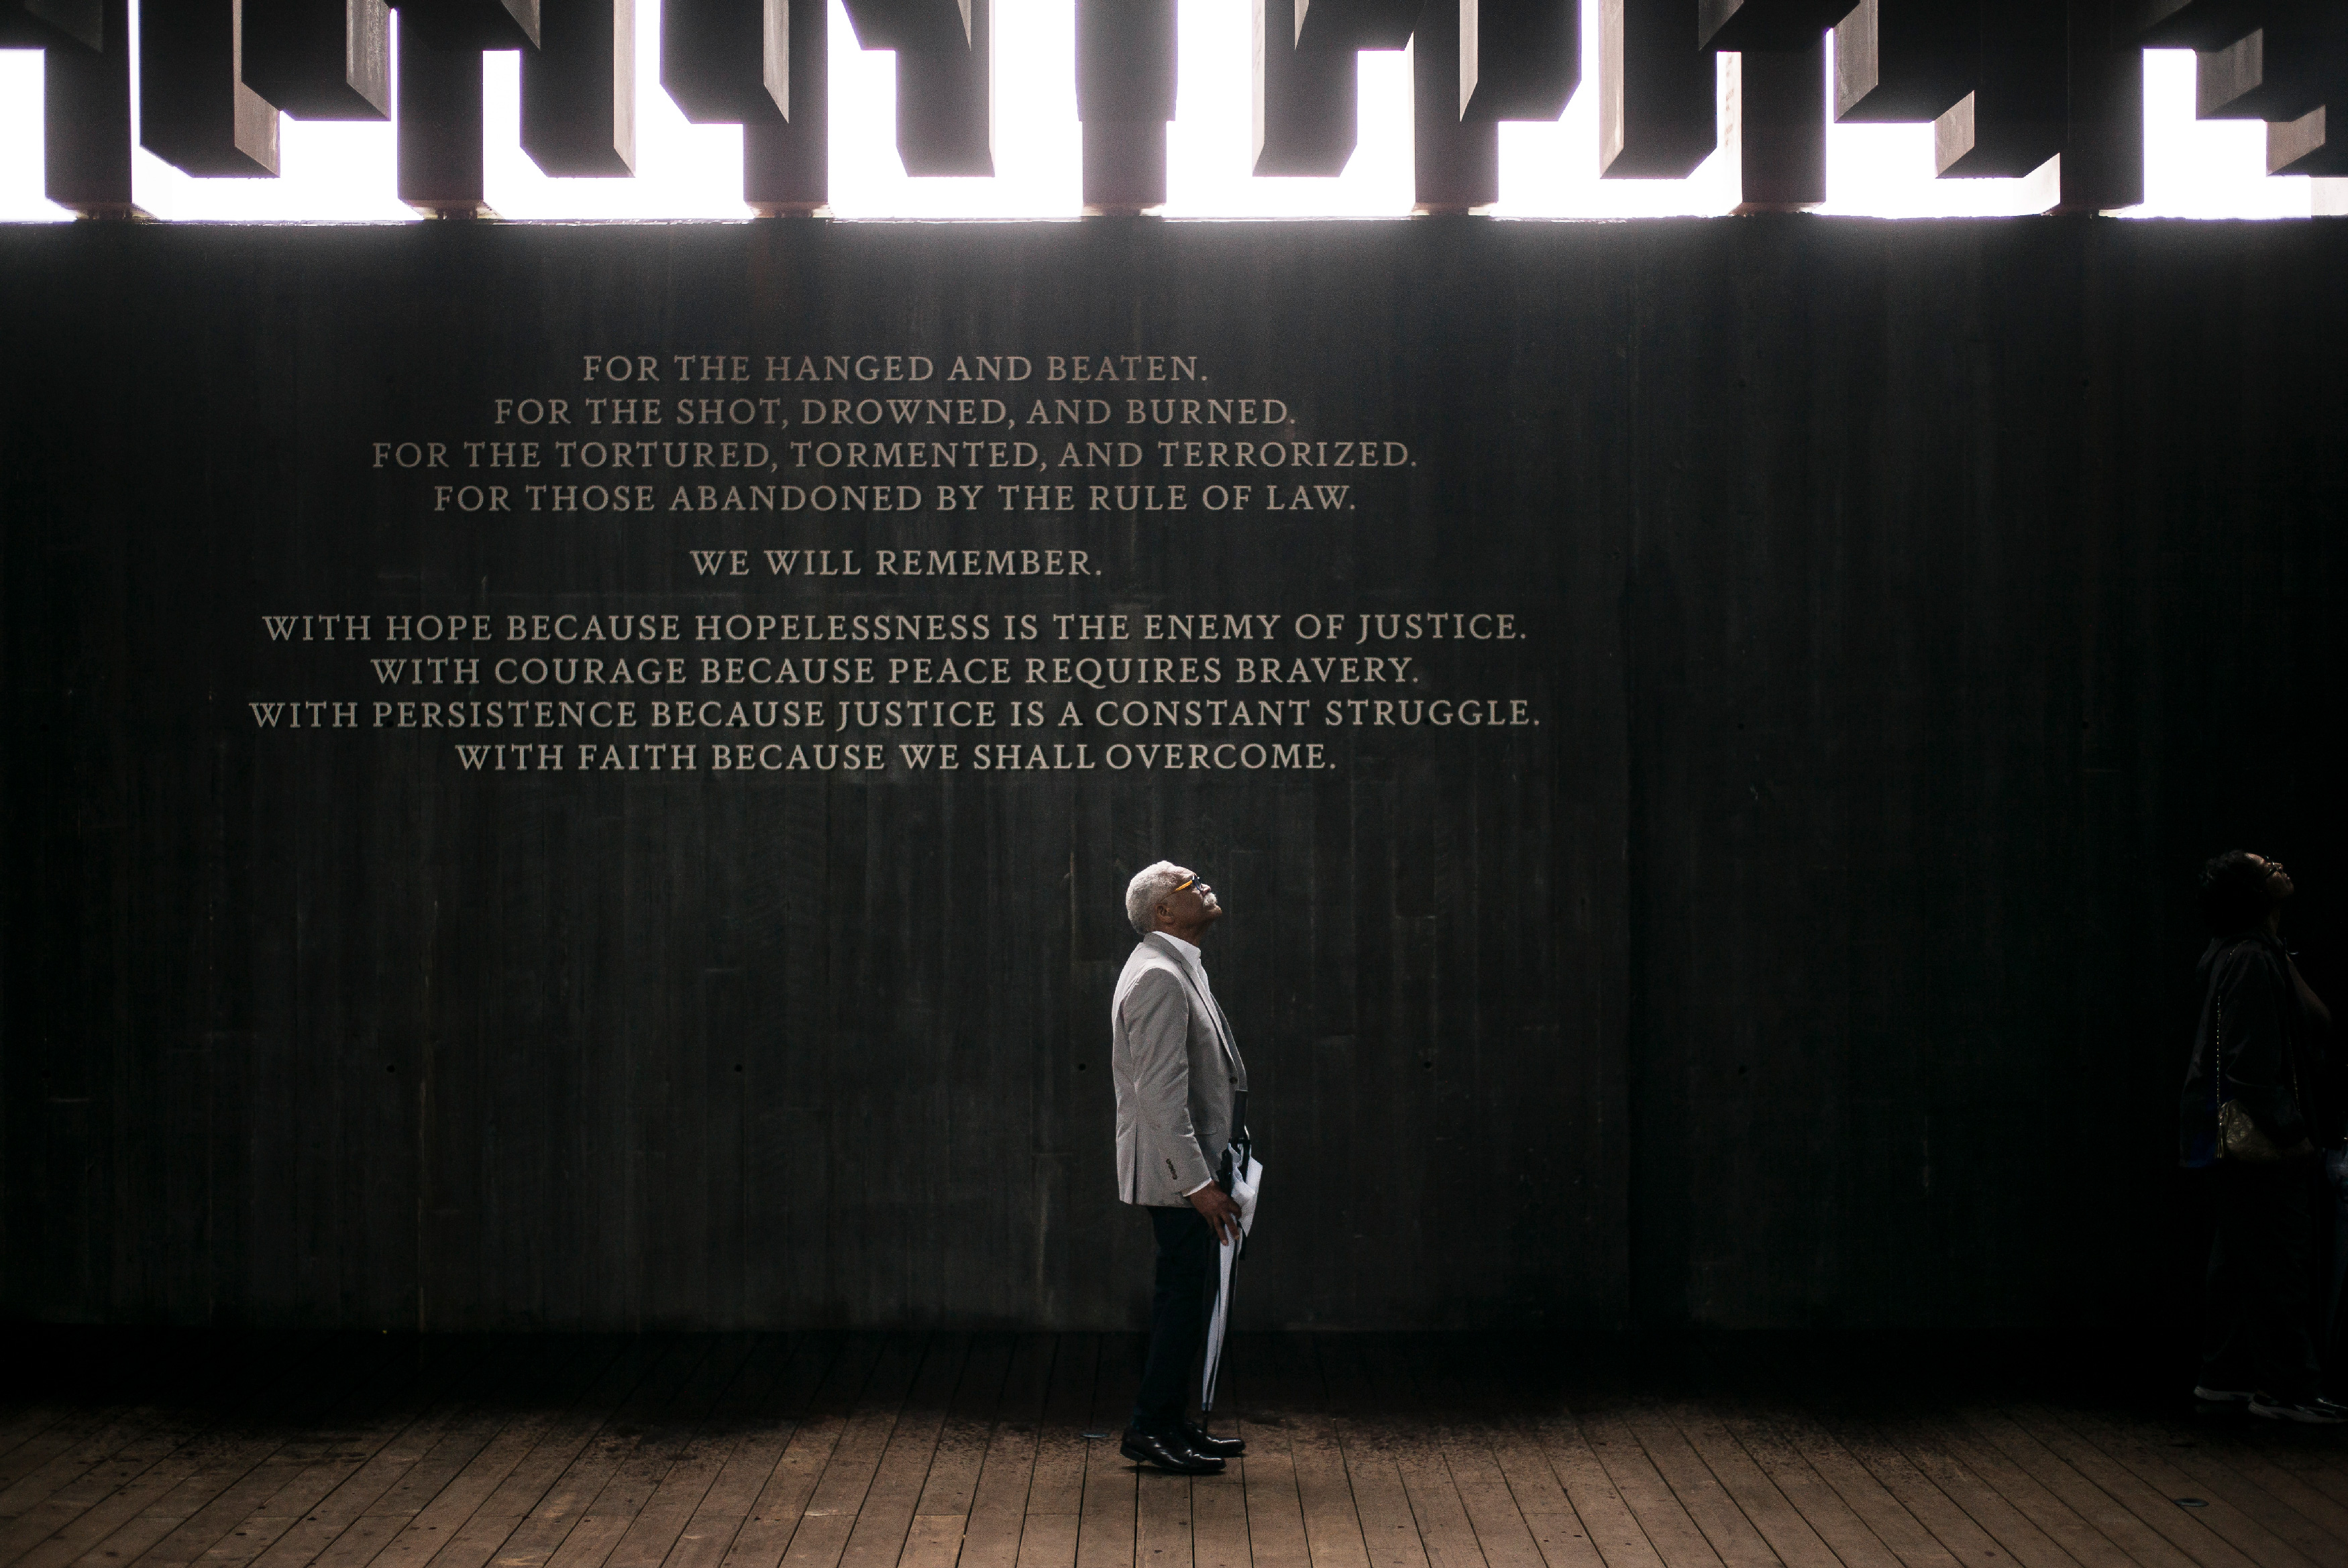 """MONTGOMERY, AL - APRIL 26: Ed Sykes, 77, visits the National Memorial For Peace And Justice on April 26, 2018 in Montgomery, Alabama. Sykes, who has family in Mississippi, was distraught when he discovered his last name in the memorial, three months after finding it on separate memorial in Clay County, Mississippi. """"This is the second time I've seen the name Sykes as a hanging victim. What can I say?"""" Sykes, who now lives in San Francisco, plans to investigate the lynching of a possible relative at the Equal Justice Initiative headquarters in Montgomery before returning to California. The memorial is dedicated to the legacy of enslaved black people and those terrorized by lynching and Jim Crow segregation in America. Conceived by the Equal Justice Initiative, the physical environment is intended to foster reflection on America's history of racial inequality. (Photo by Bob Miller/Getty Images)"""